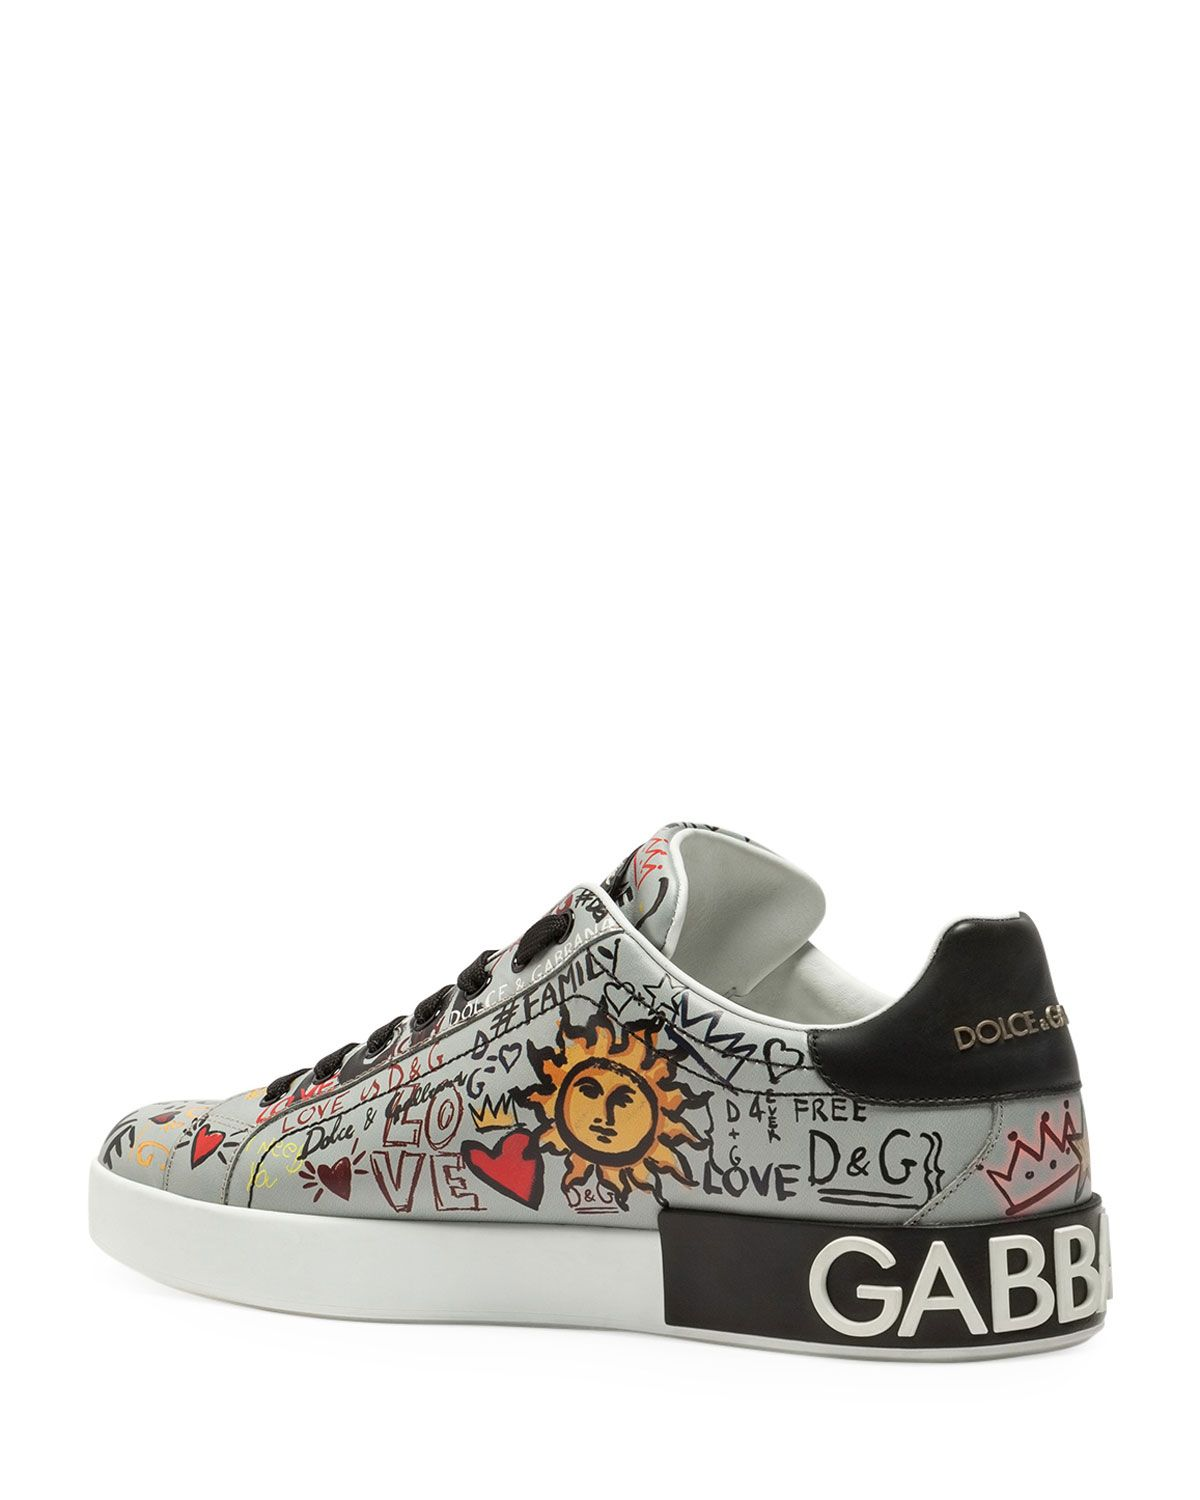 d563bc4f9 Dolce & Gabbana Men's Portofino Graffiti Leather Low-Top Sneakers ...